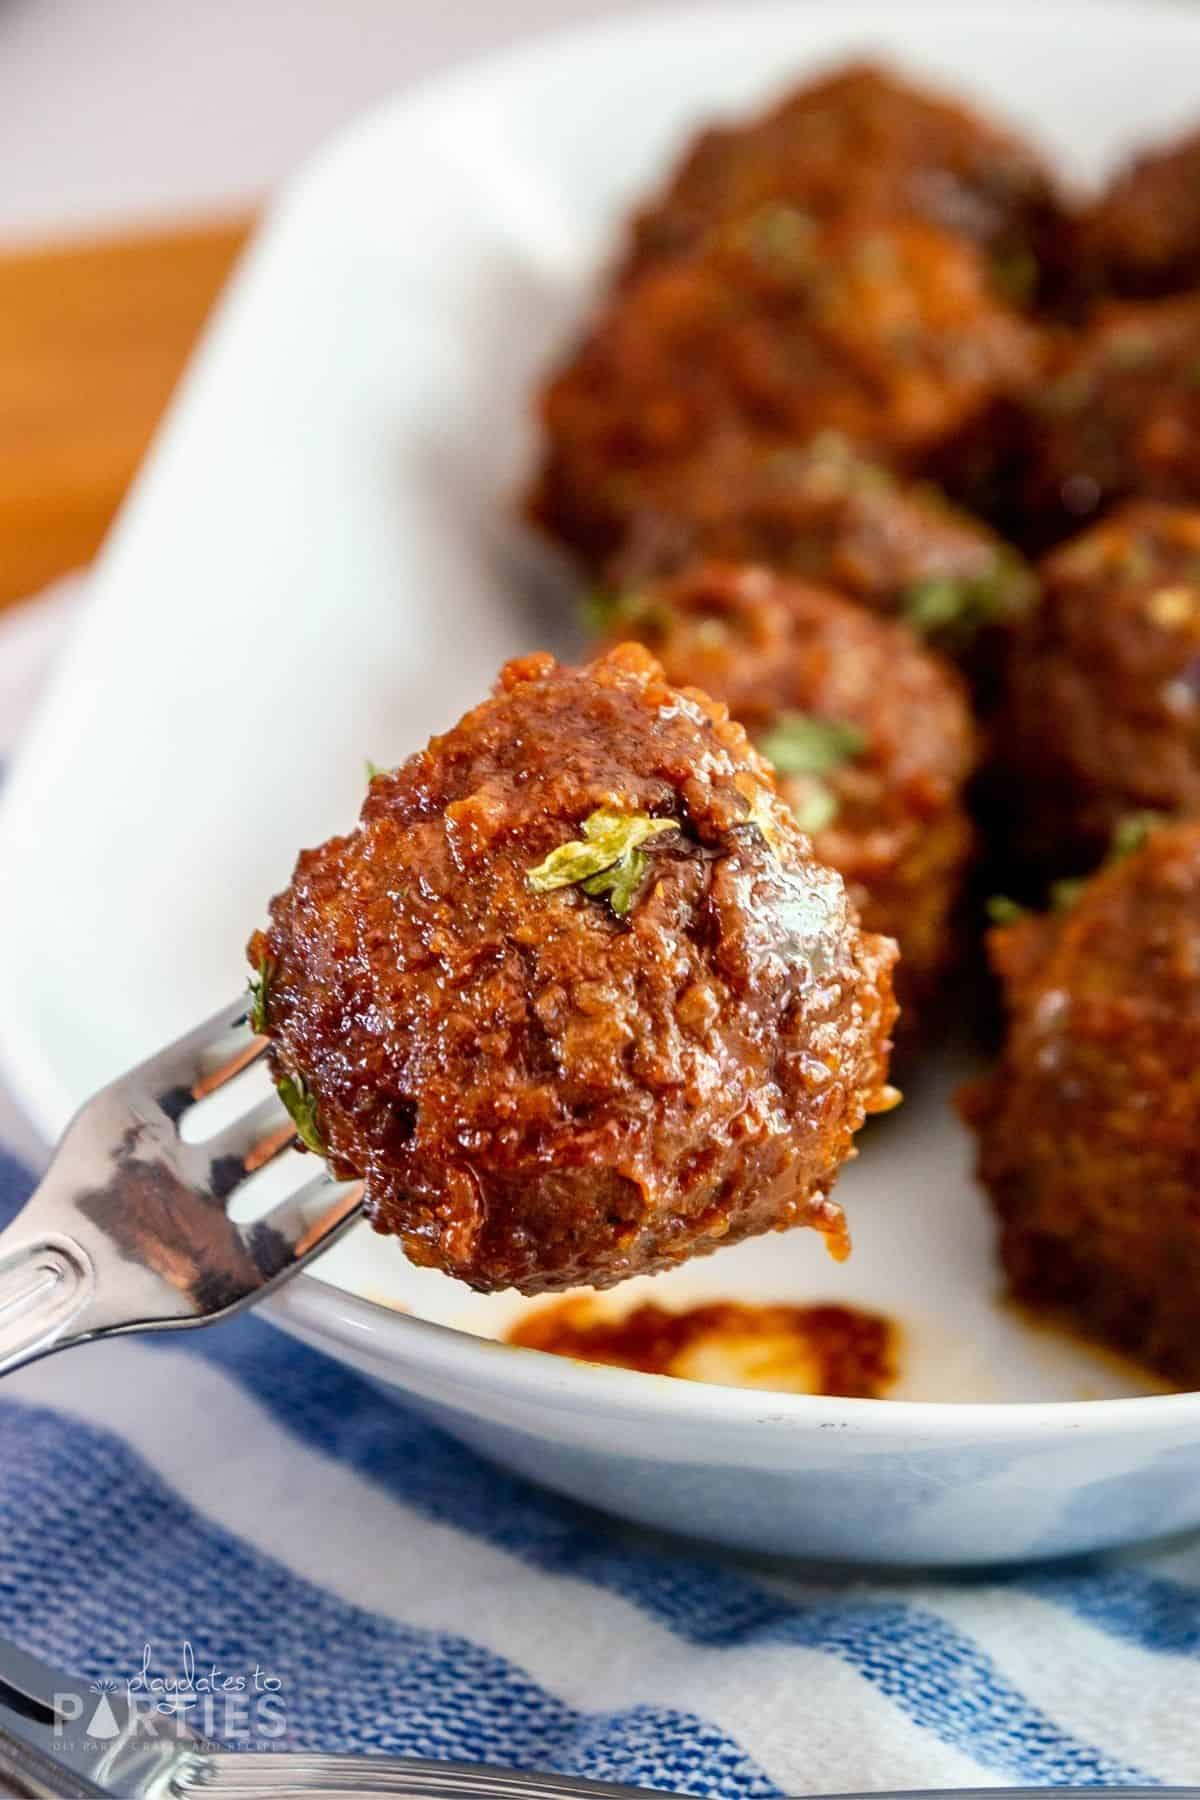 close up of a meatball on a cocktail fork with a plate of meatballs in the background